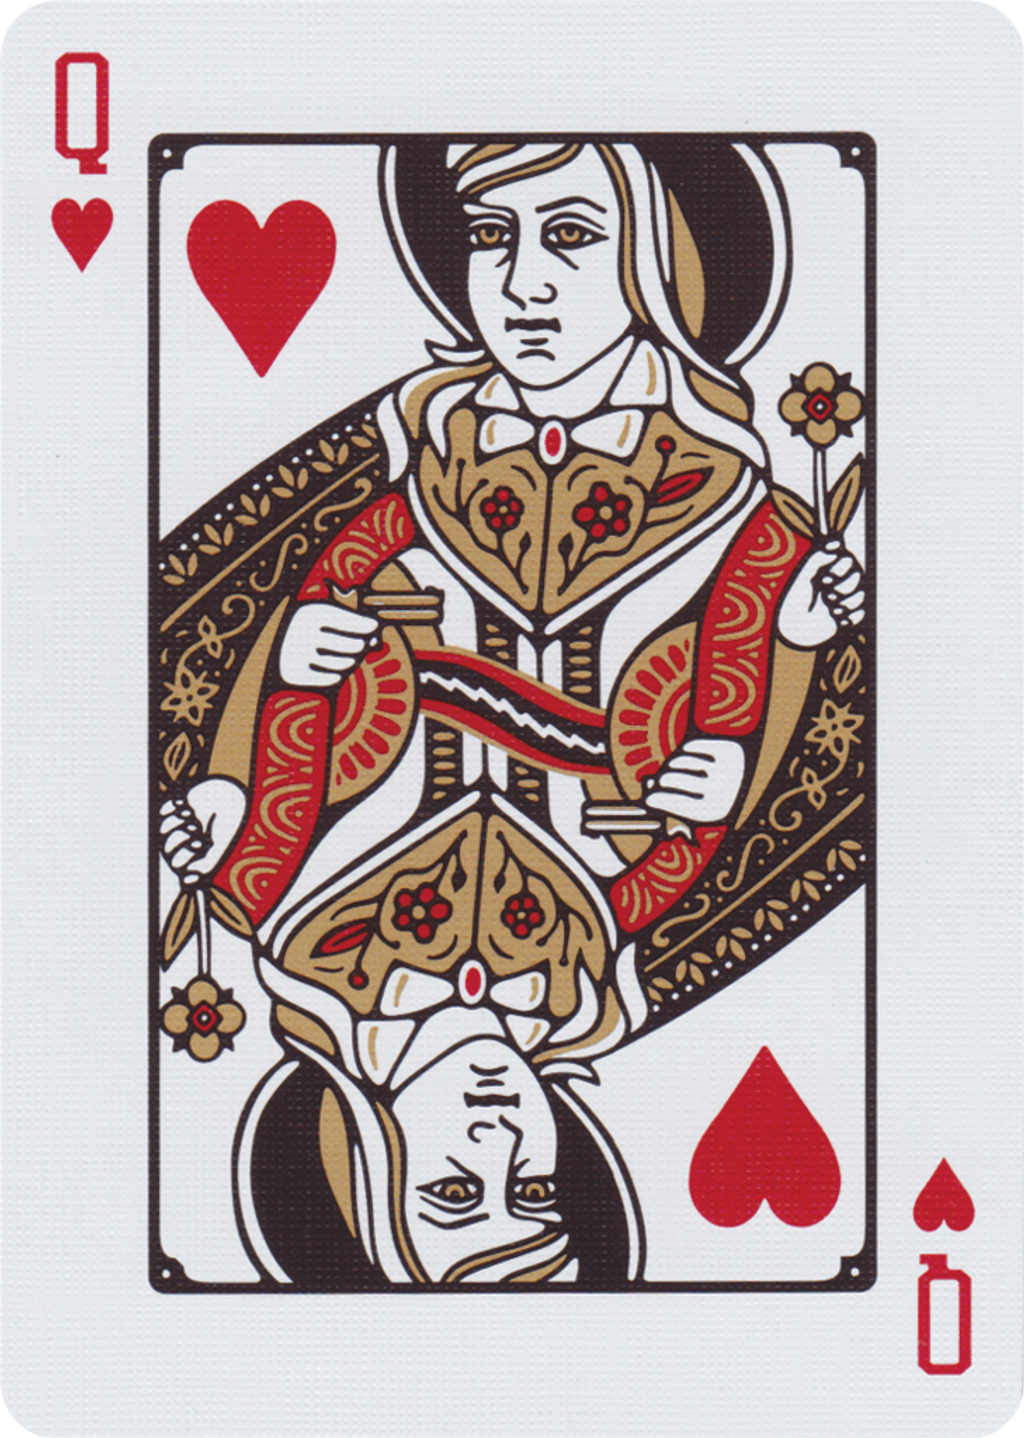 playing-cards-drifters-8_1024x1024.png